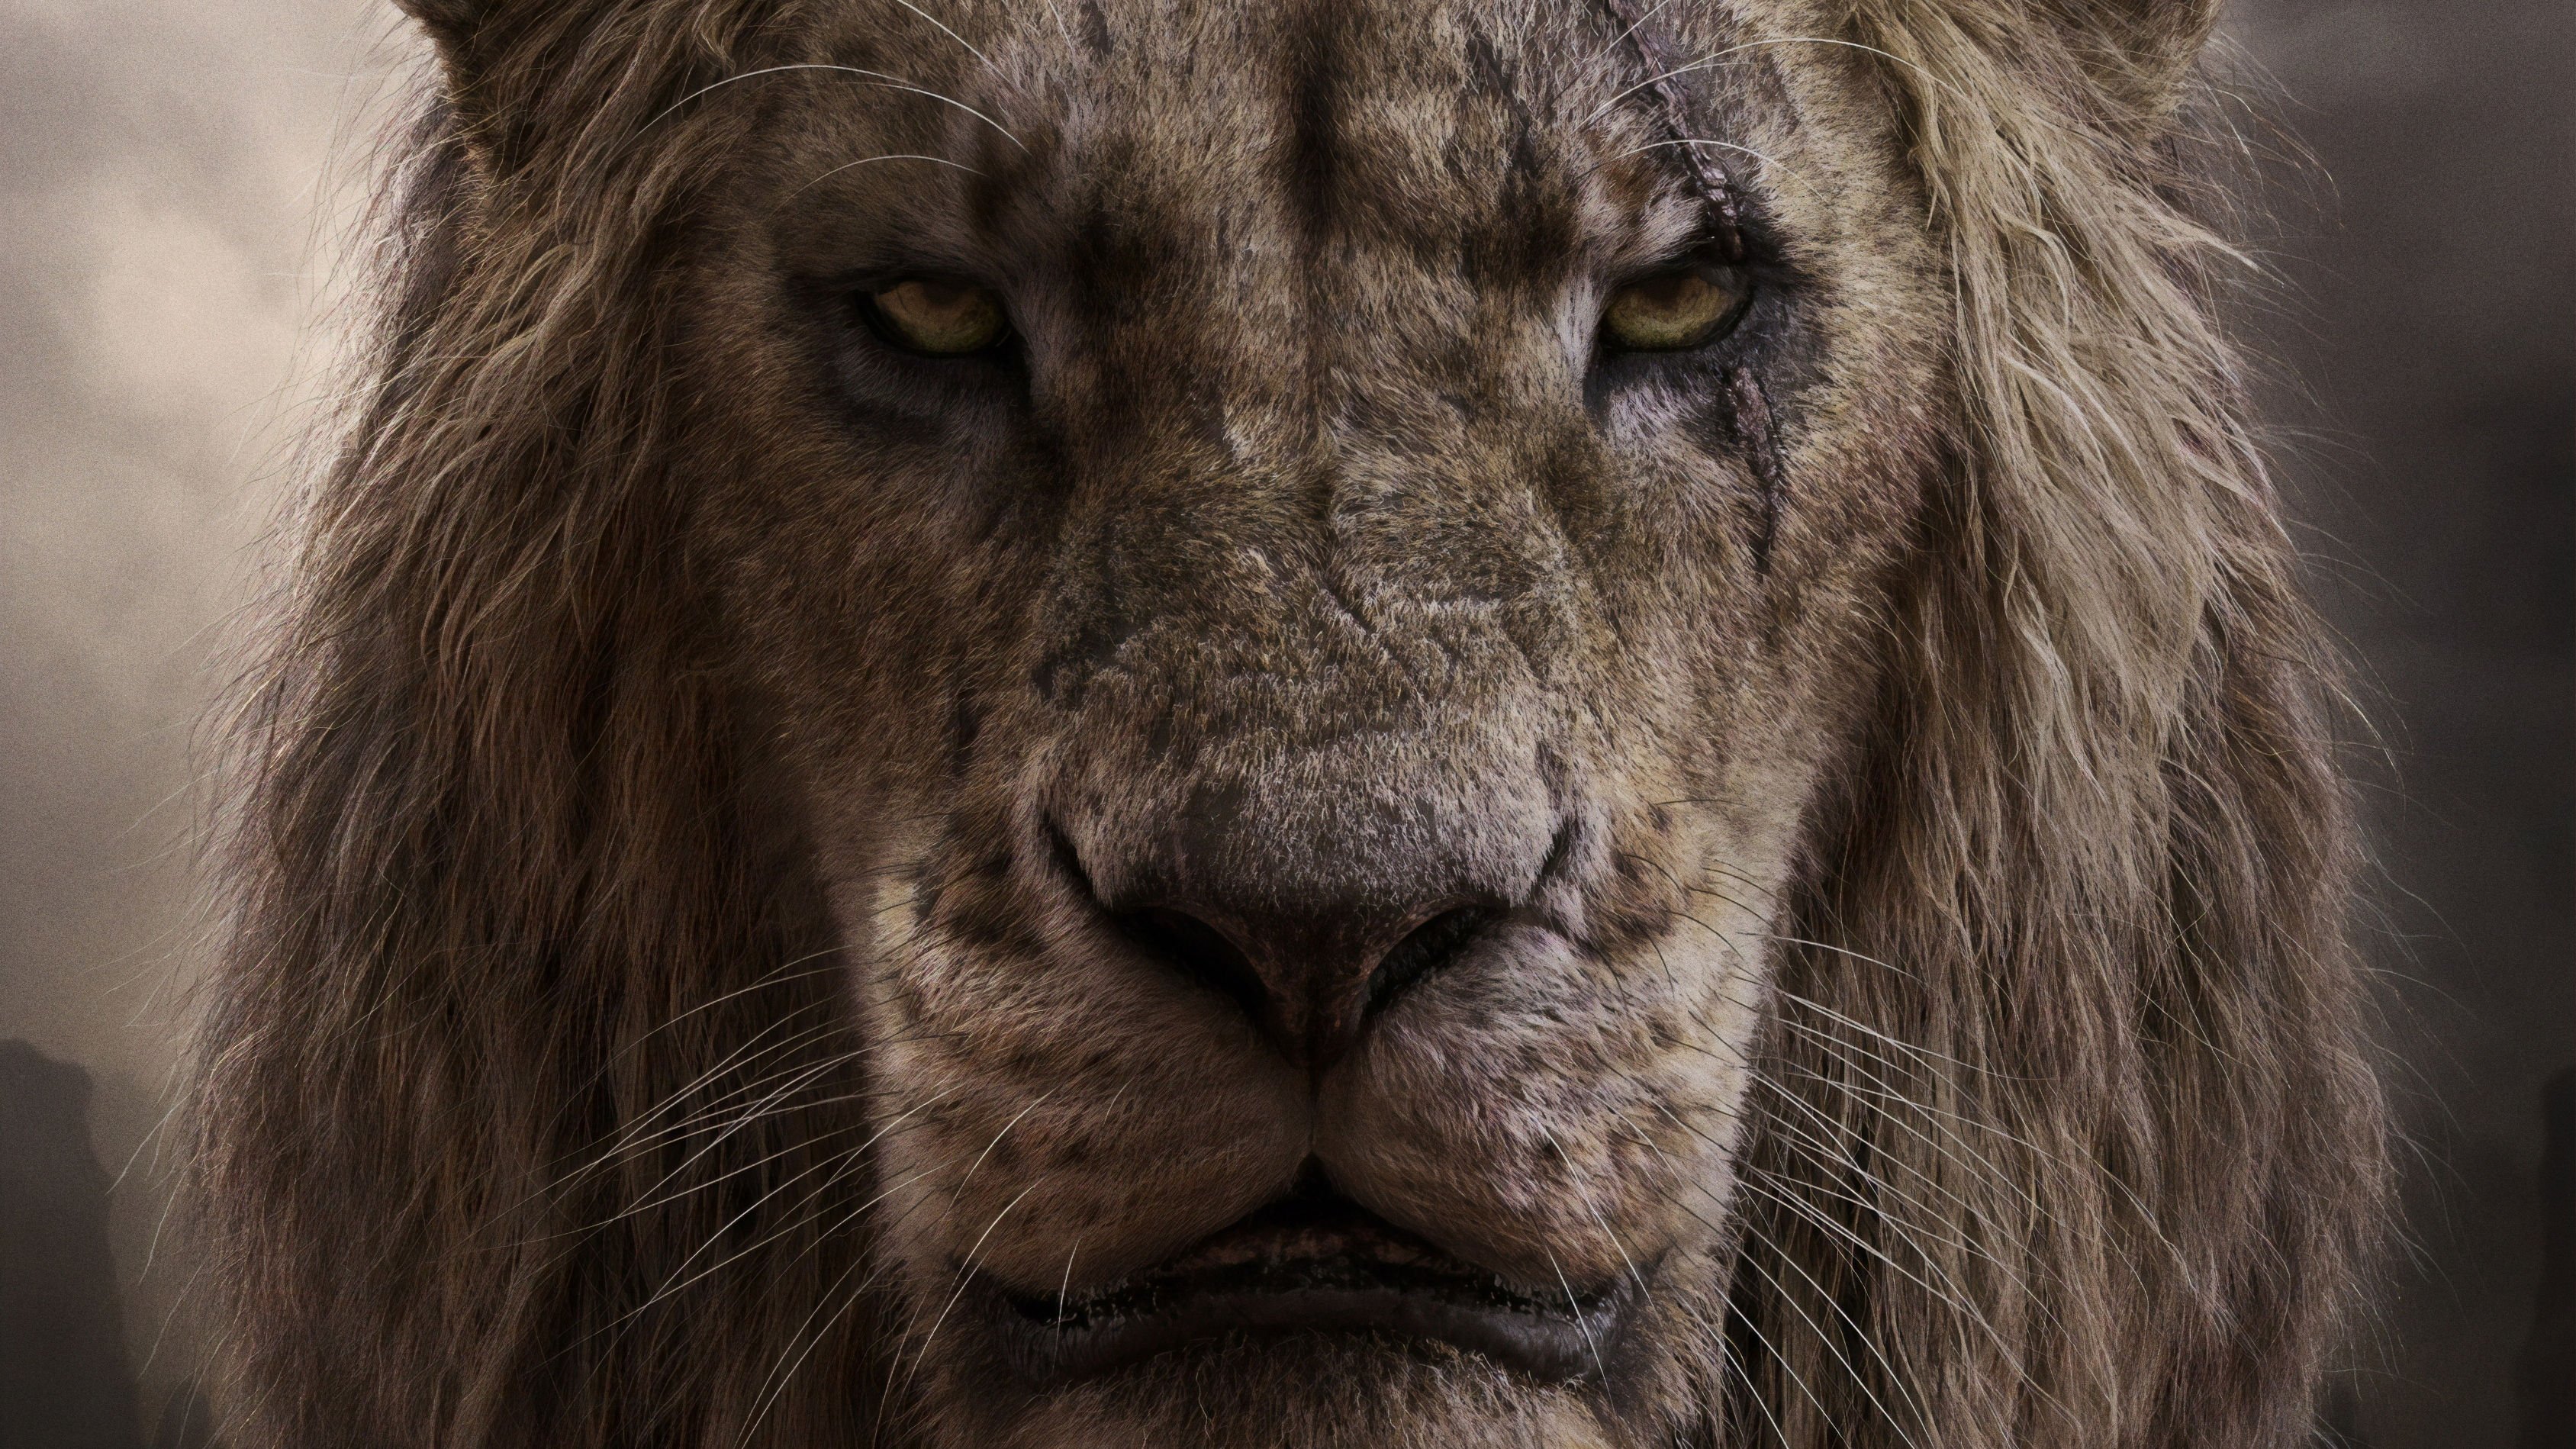 Chiwetel Ejiofor As Scar In The Lion King 2019 4k, HD